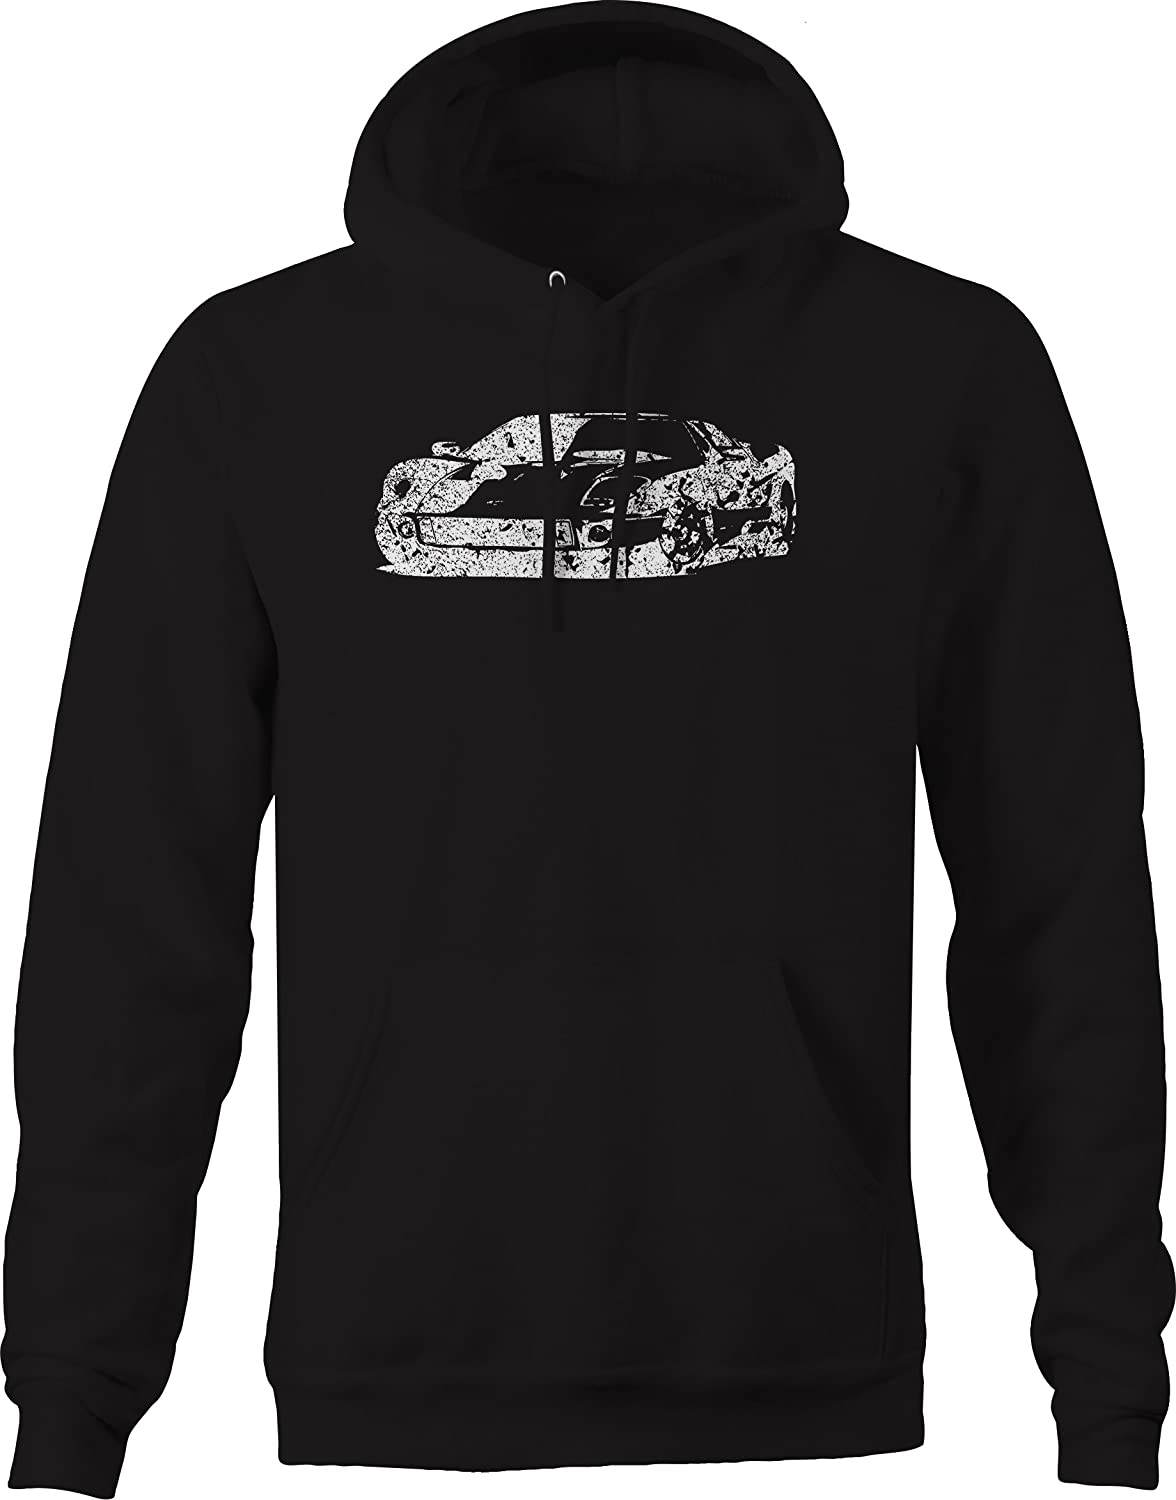 Vintage Italian Sportscar Supercar Lambo Rarri Graphic Hoodie for Men